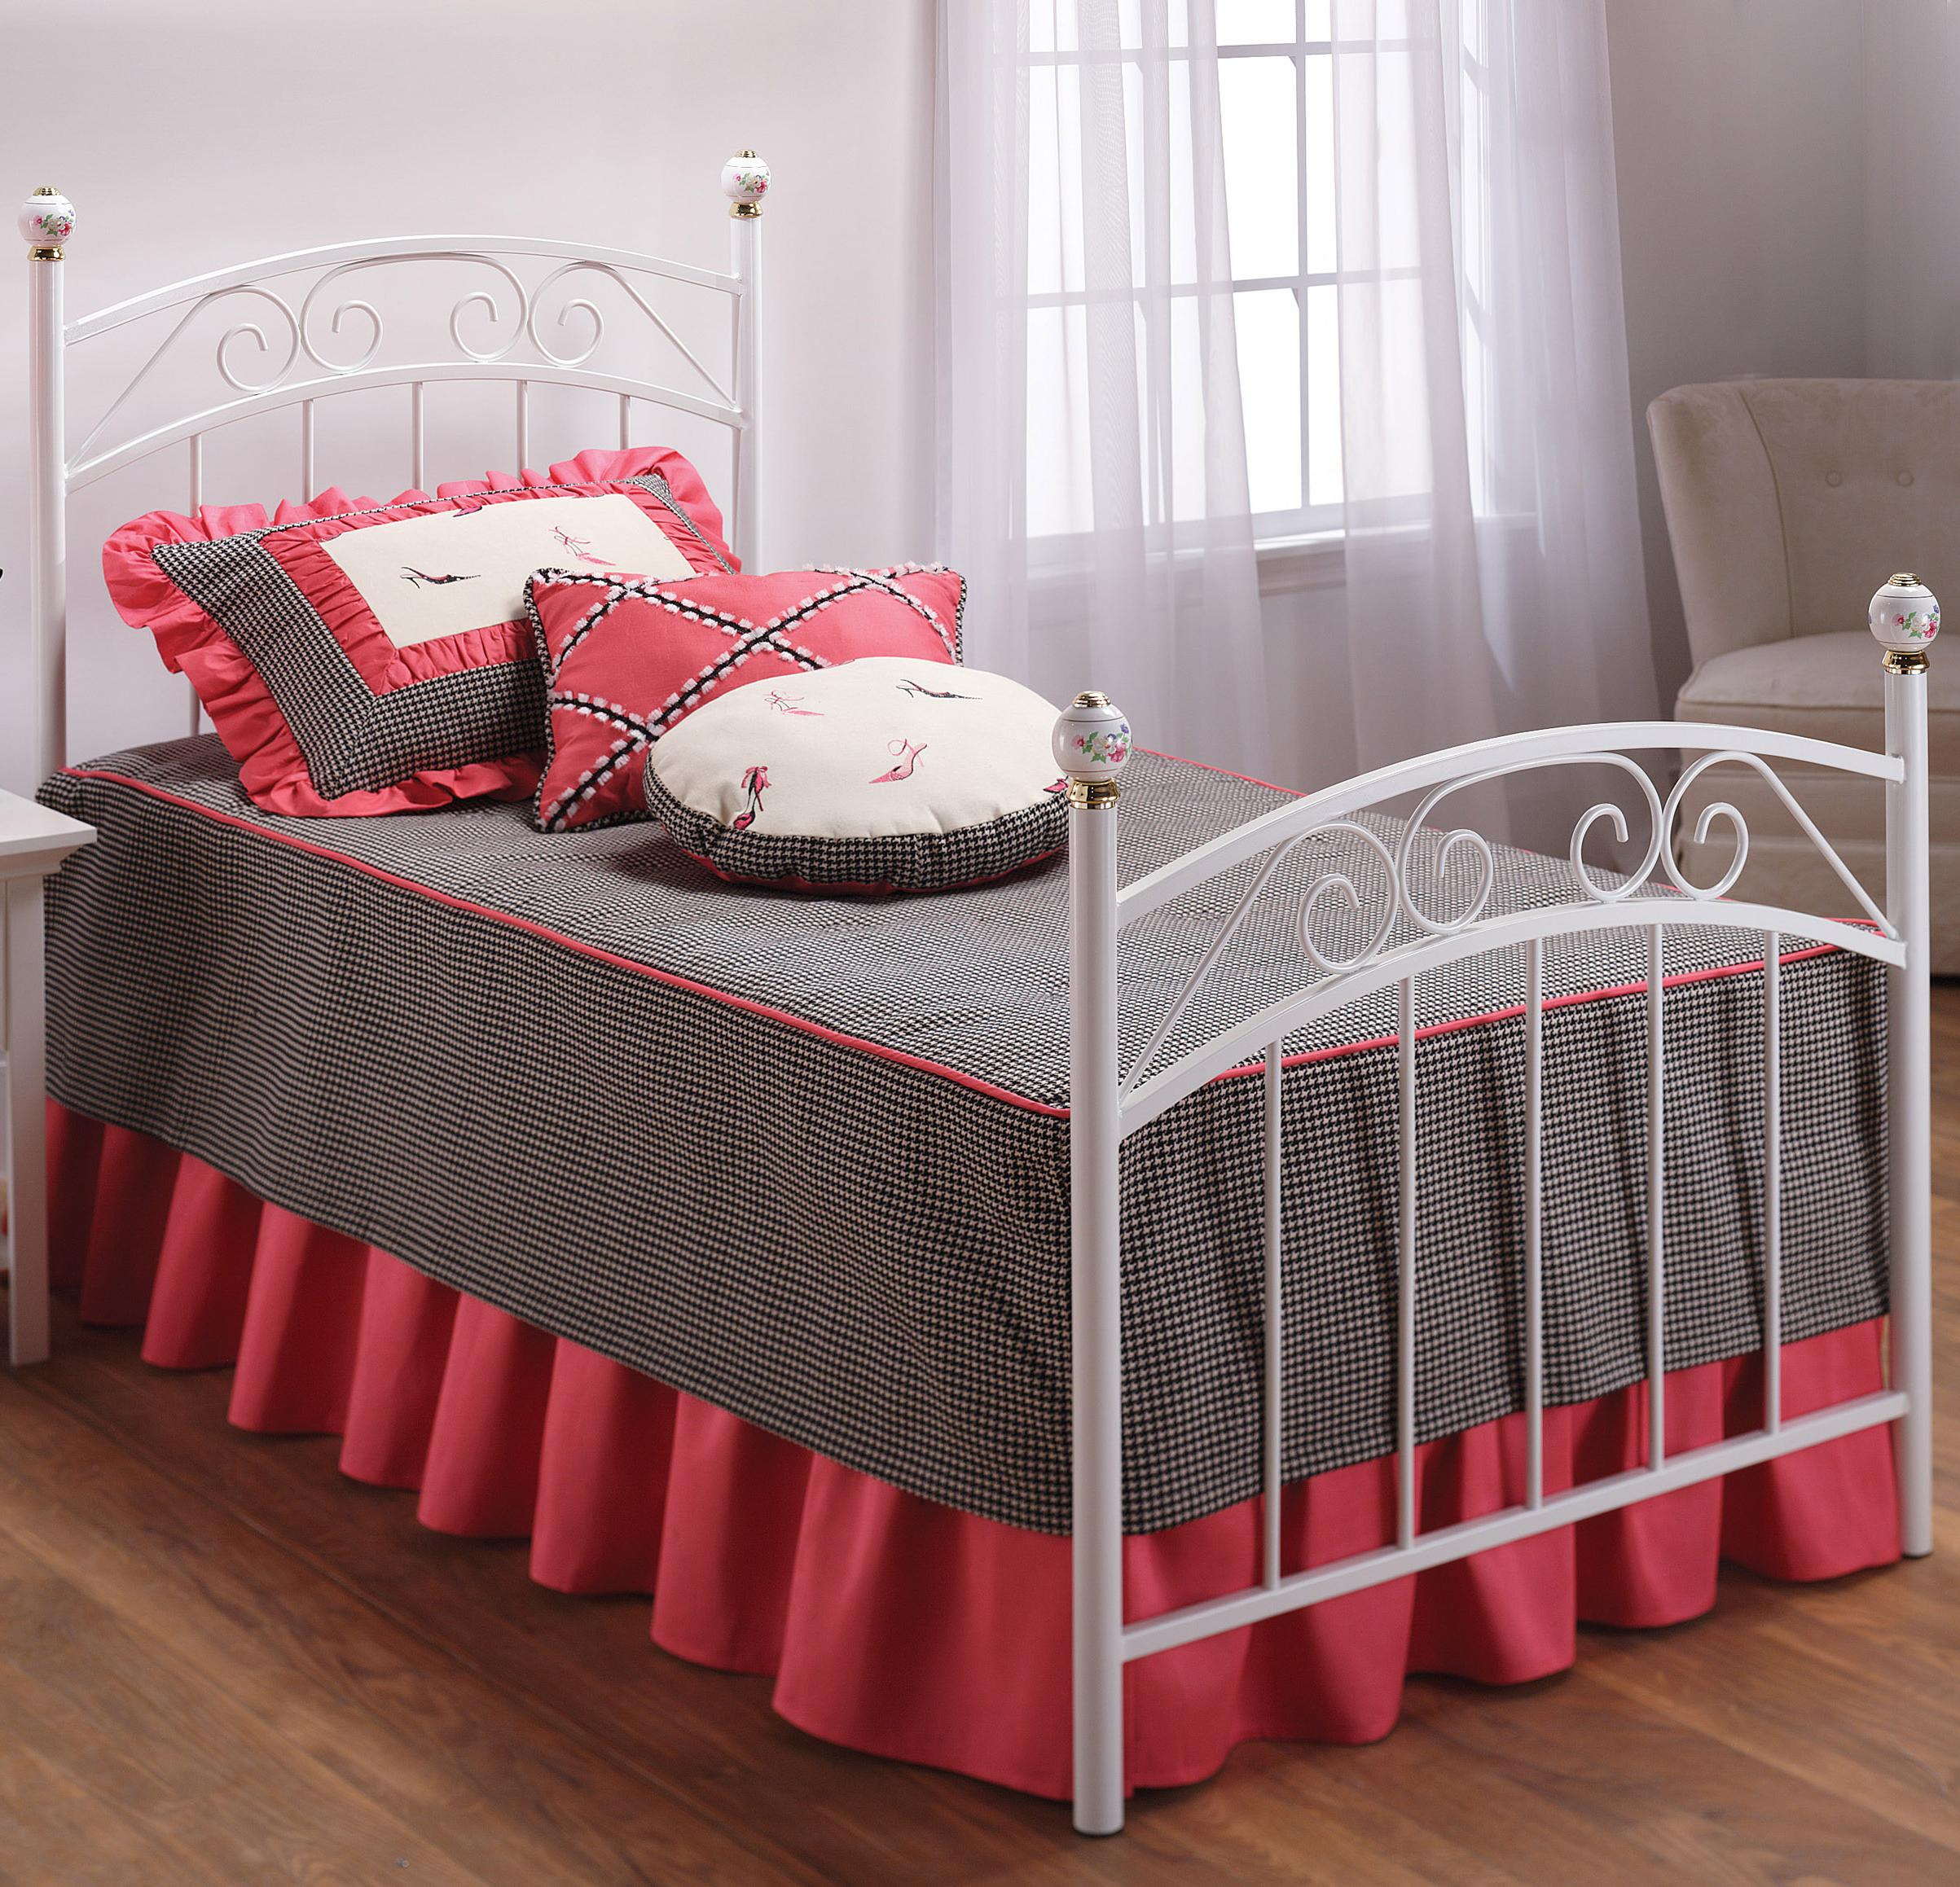 Hillsdale Metal Beds Emma Full Bed - Item Number: 1864BFR